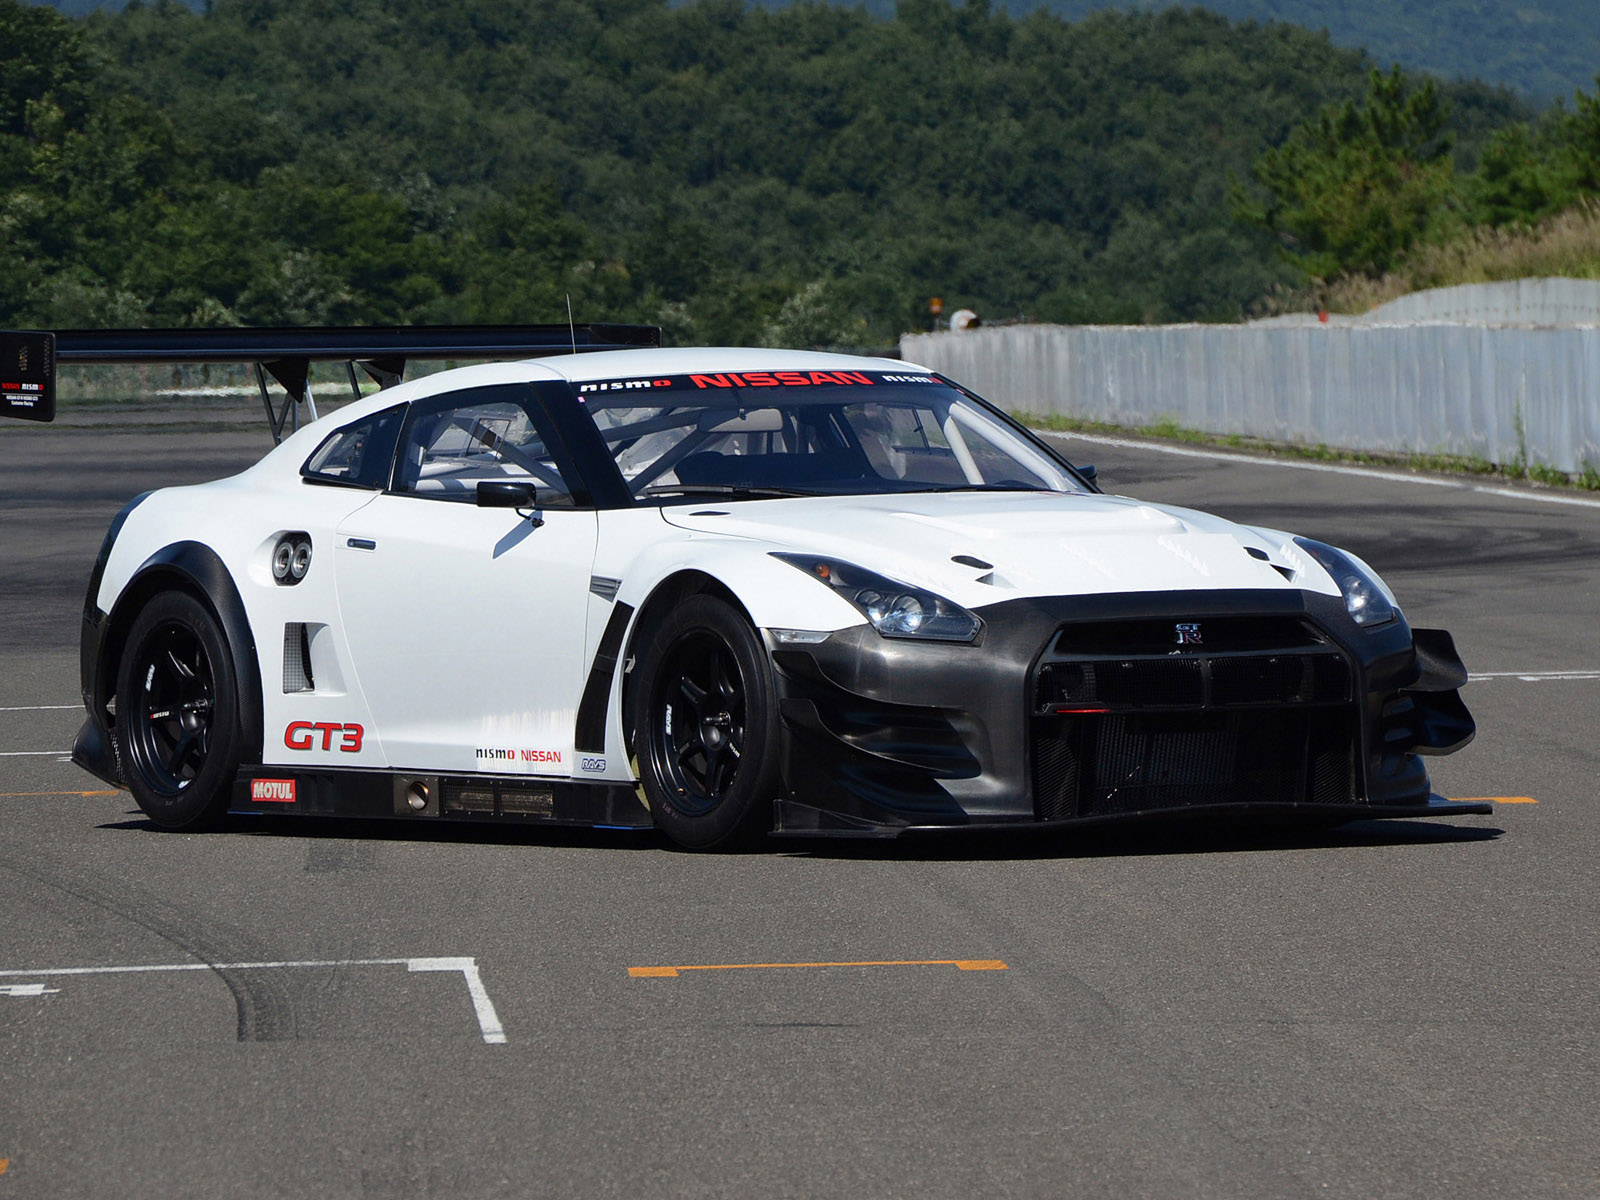 2013 nissan gt r nismo gt3 series for sale. Black Bedroom Furniture Sets. Home Design Ideas